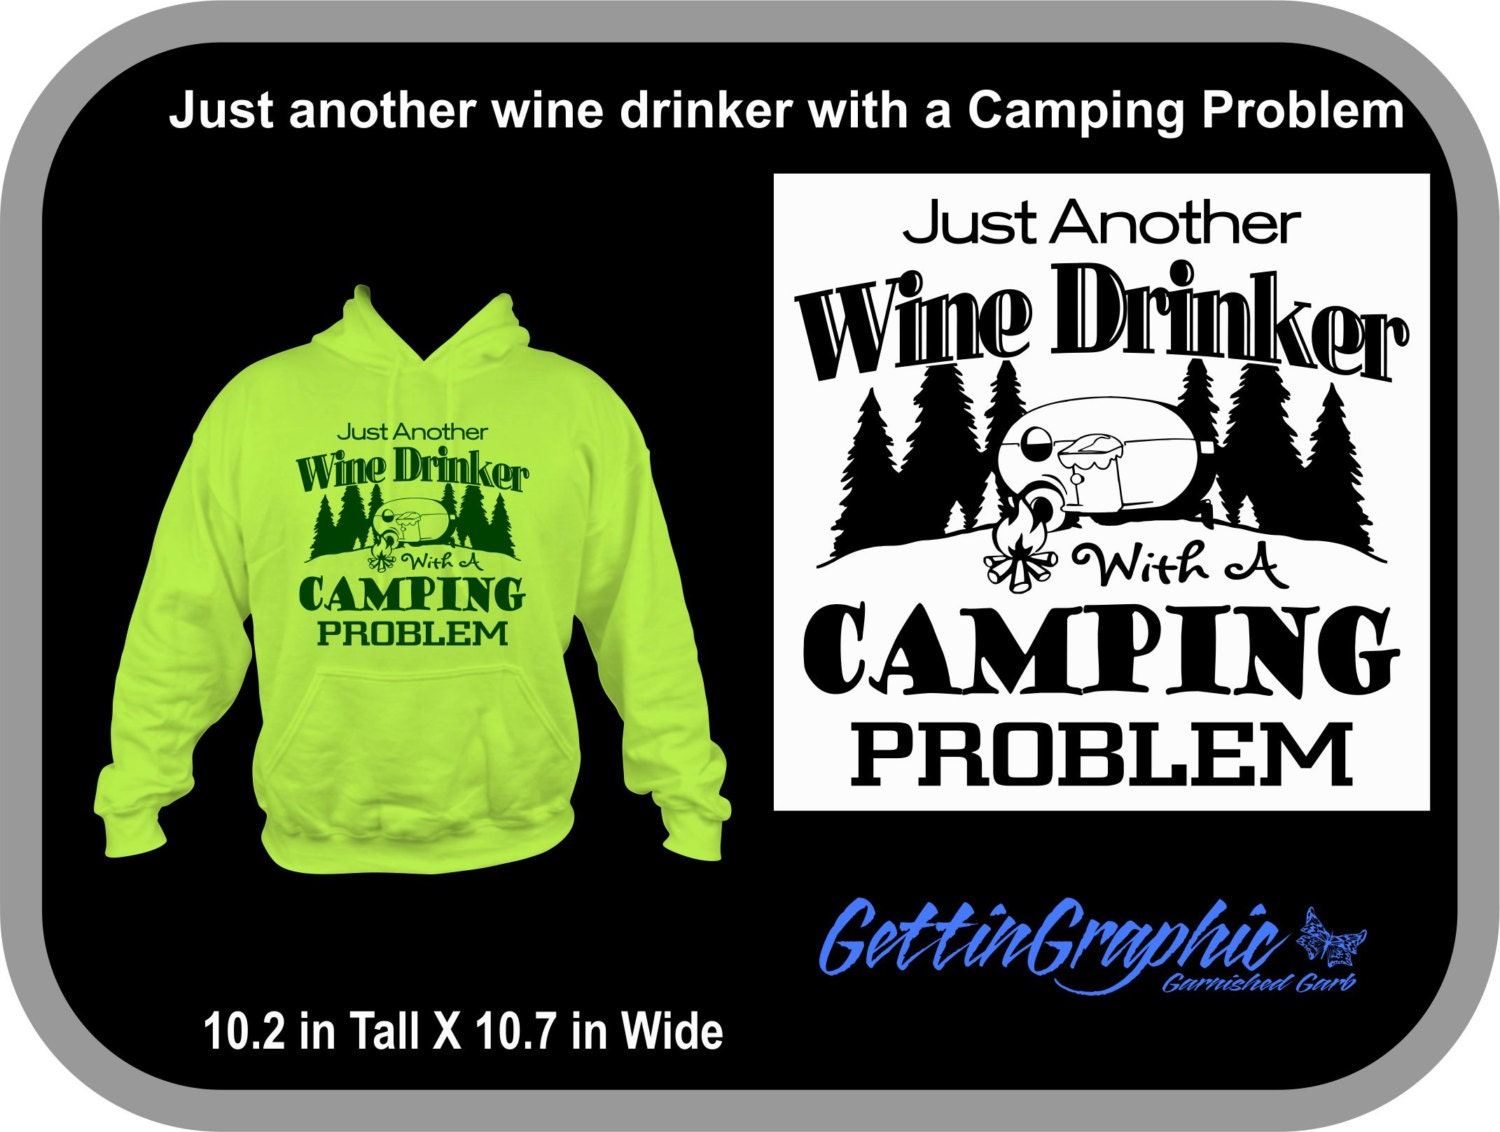 Just Another Wordpress Com Site: Just Another Wine Drinker With A Camping Problem. Camping